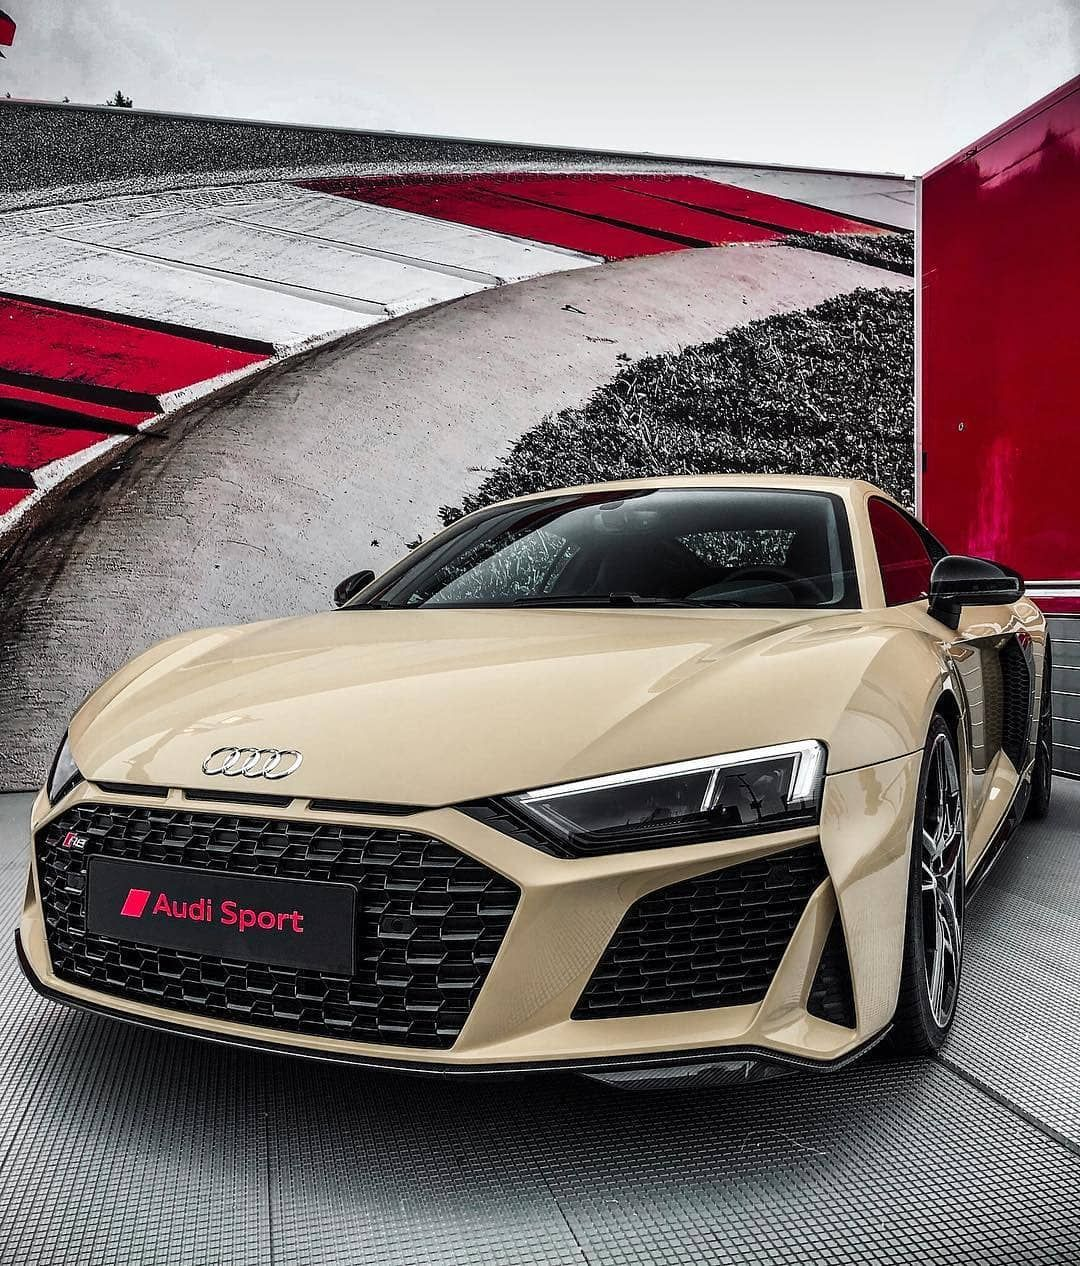 Rare Beige Audi R8 Performance Rate This Audi From 1 100 Get 10 Discount For Audi Tuning Parts By Ultimatecustomsuk Audi R8 Super Sport Cars Audi Cars